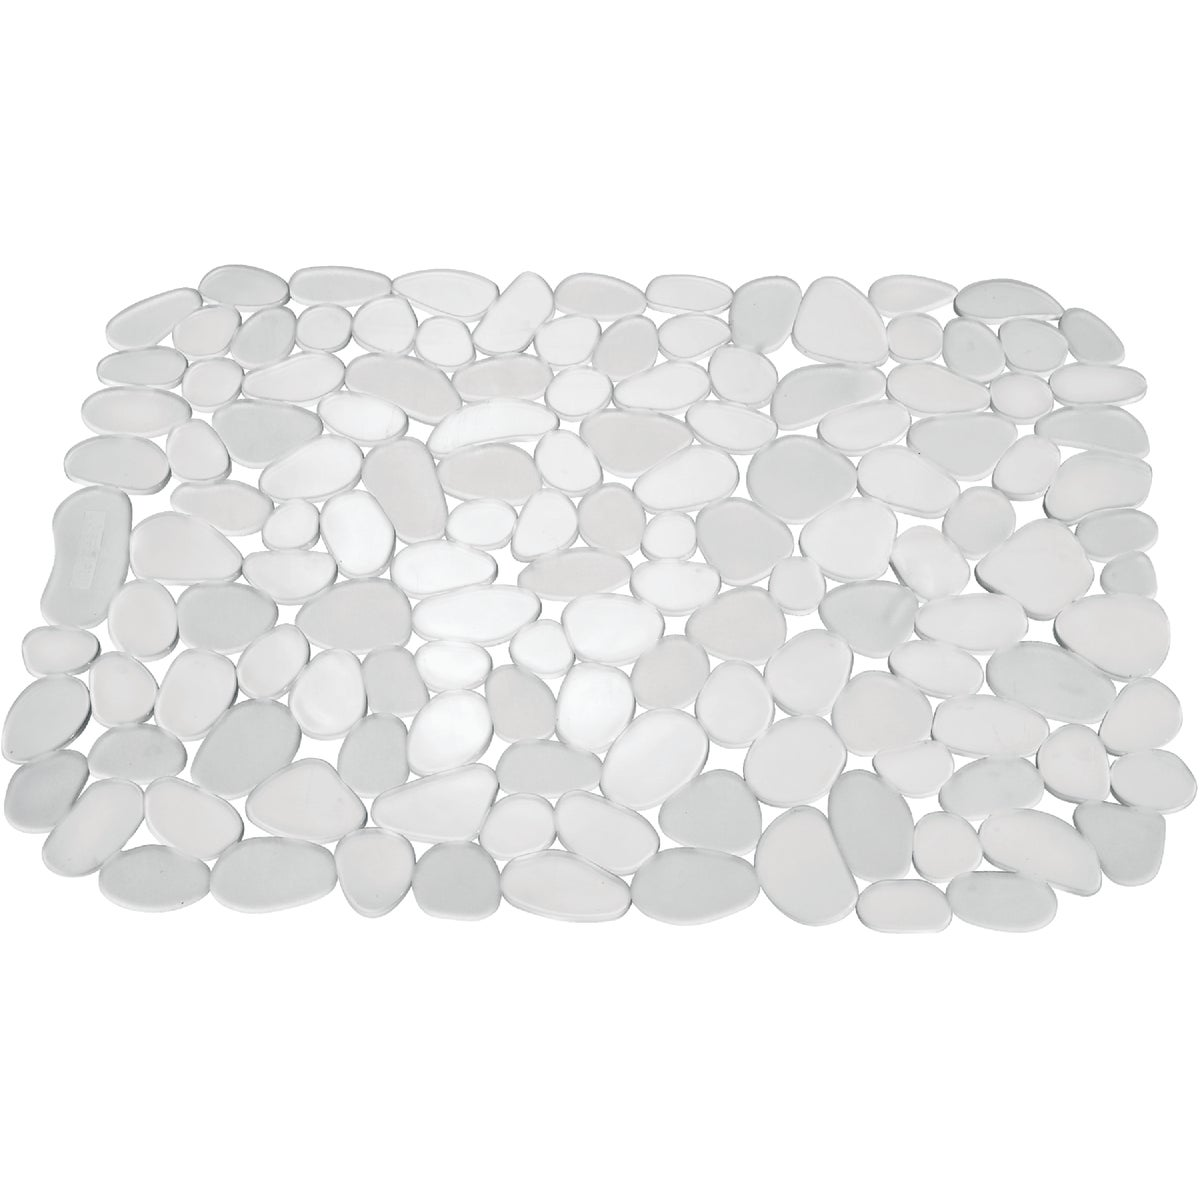 LARGE CLEAR SINK MAT